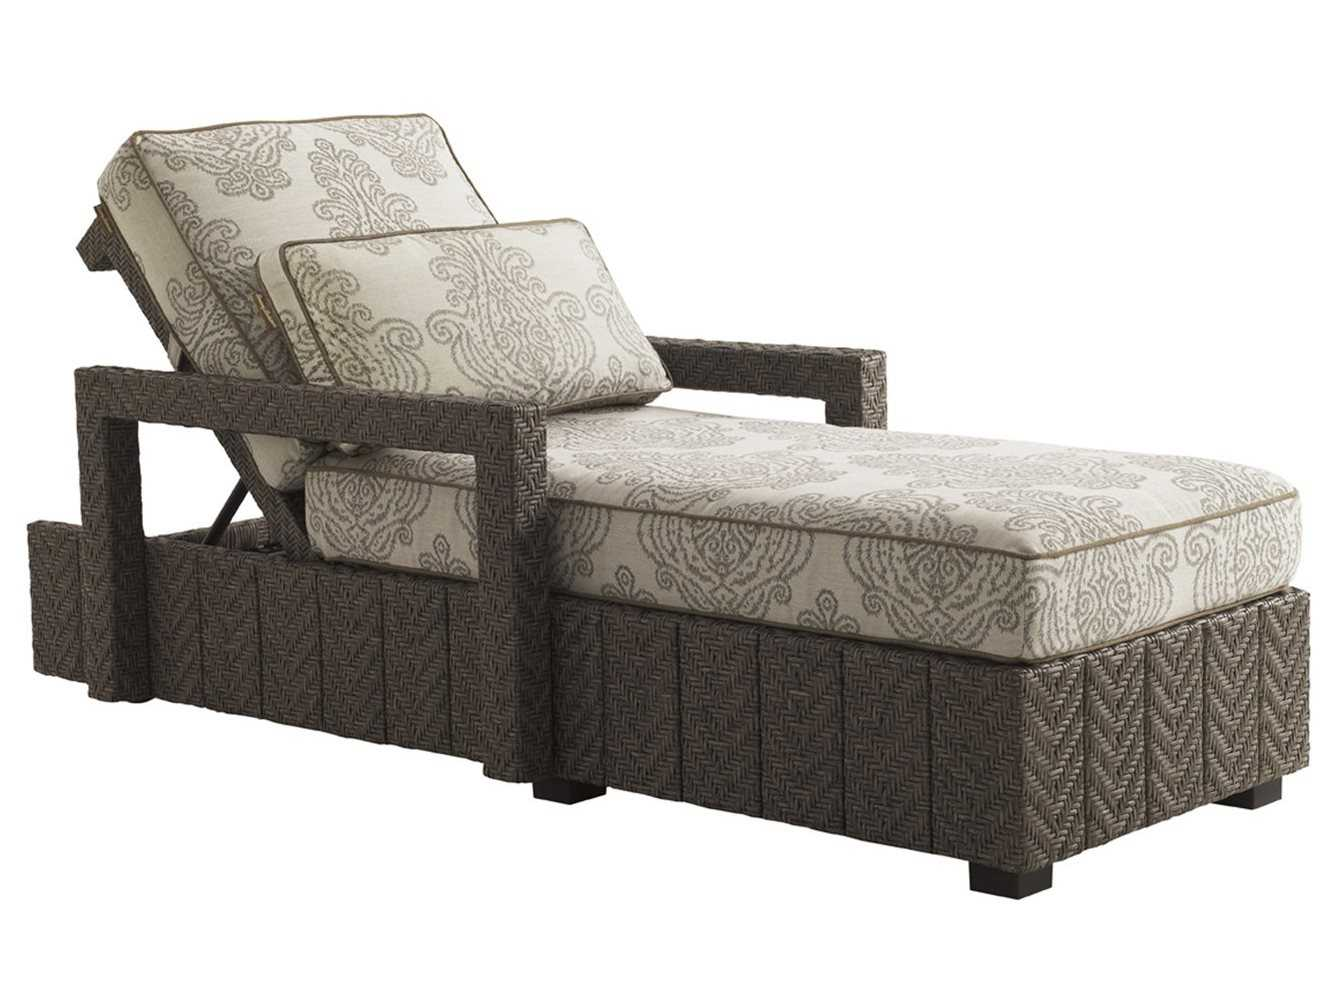 Tommy Bahama Outdoor Blue Olive Wicker Chaise Lounge 3230 75